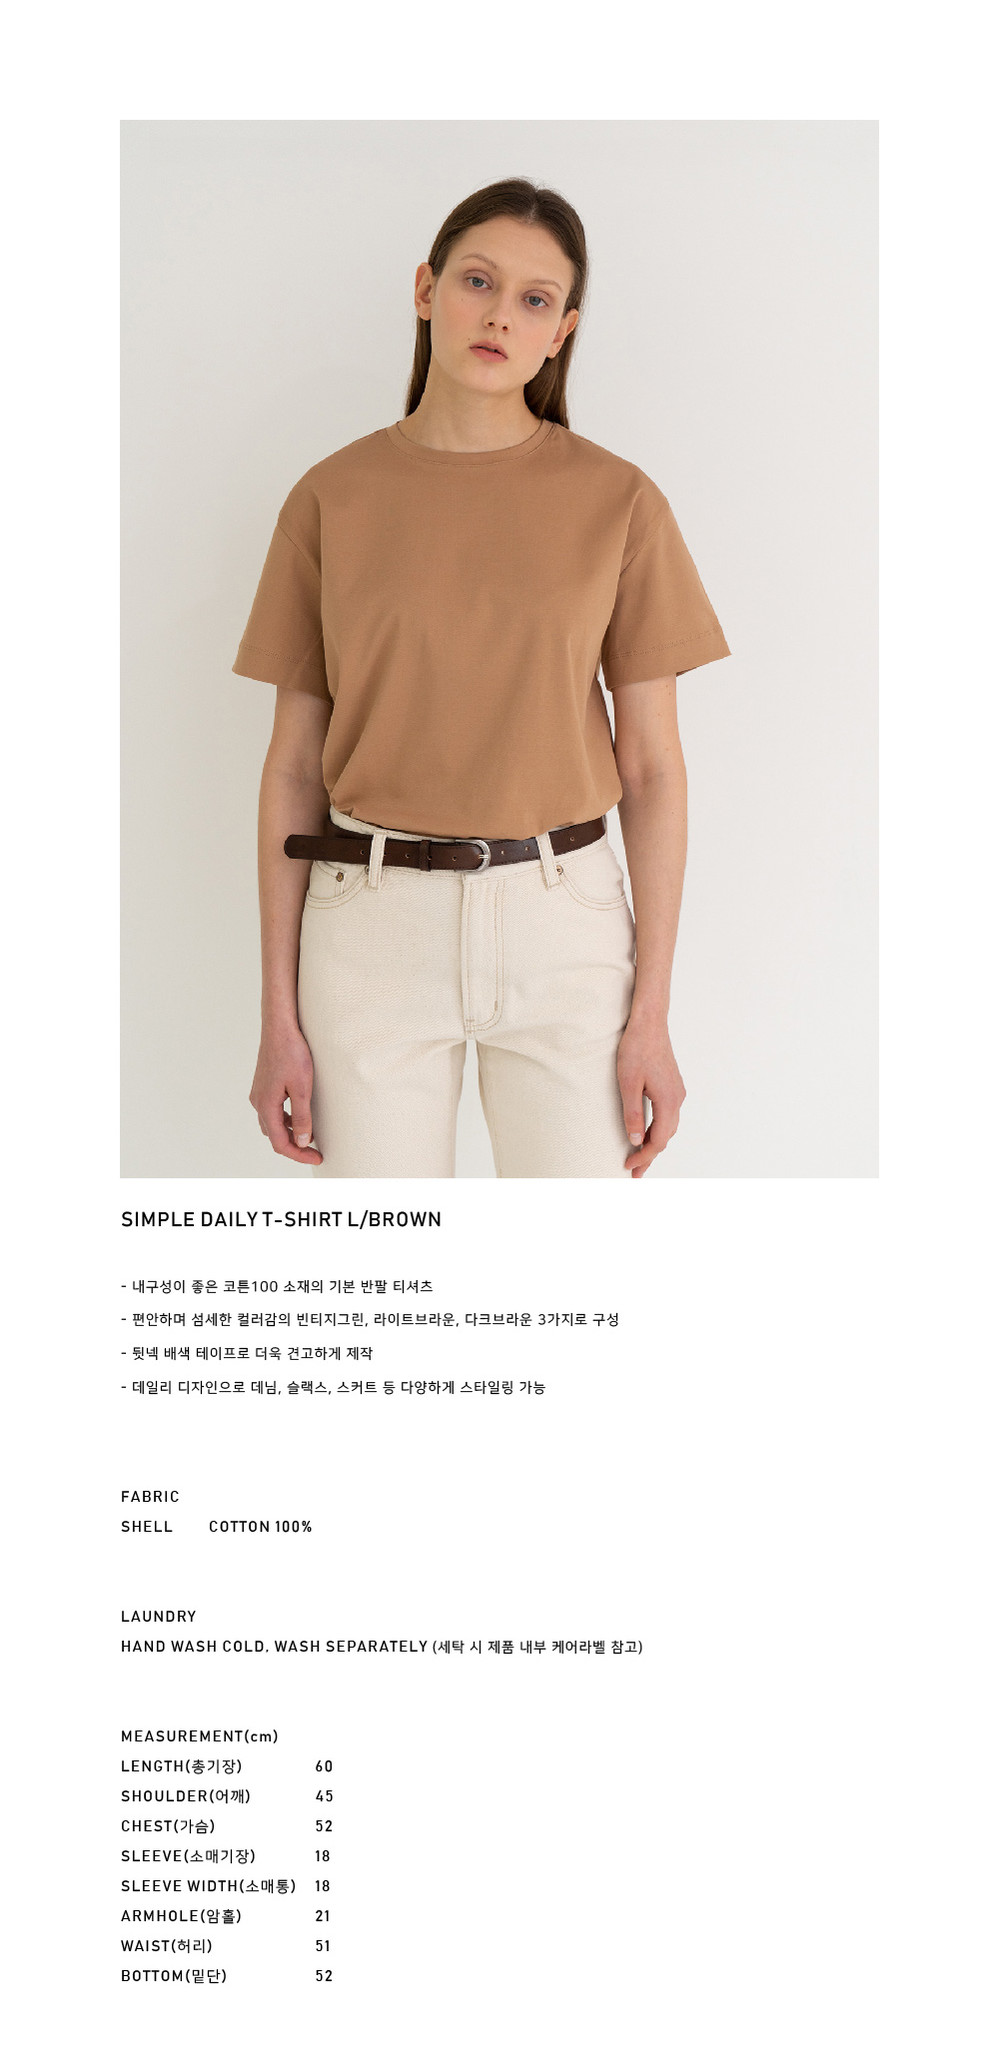 SIMPLE DAILY T-SHIRT L/BROWN